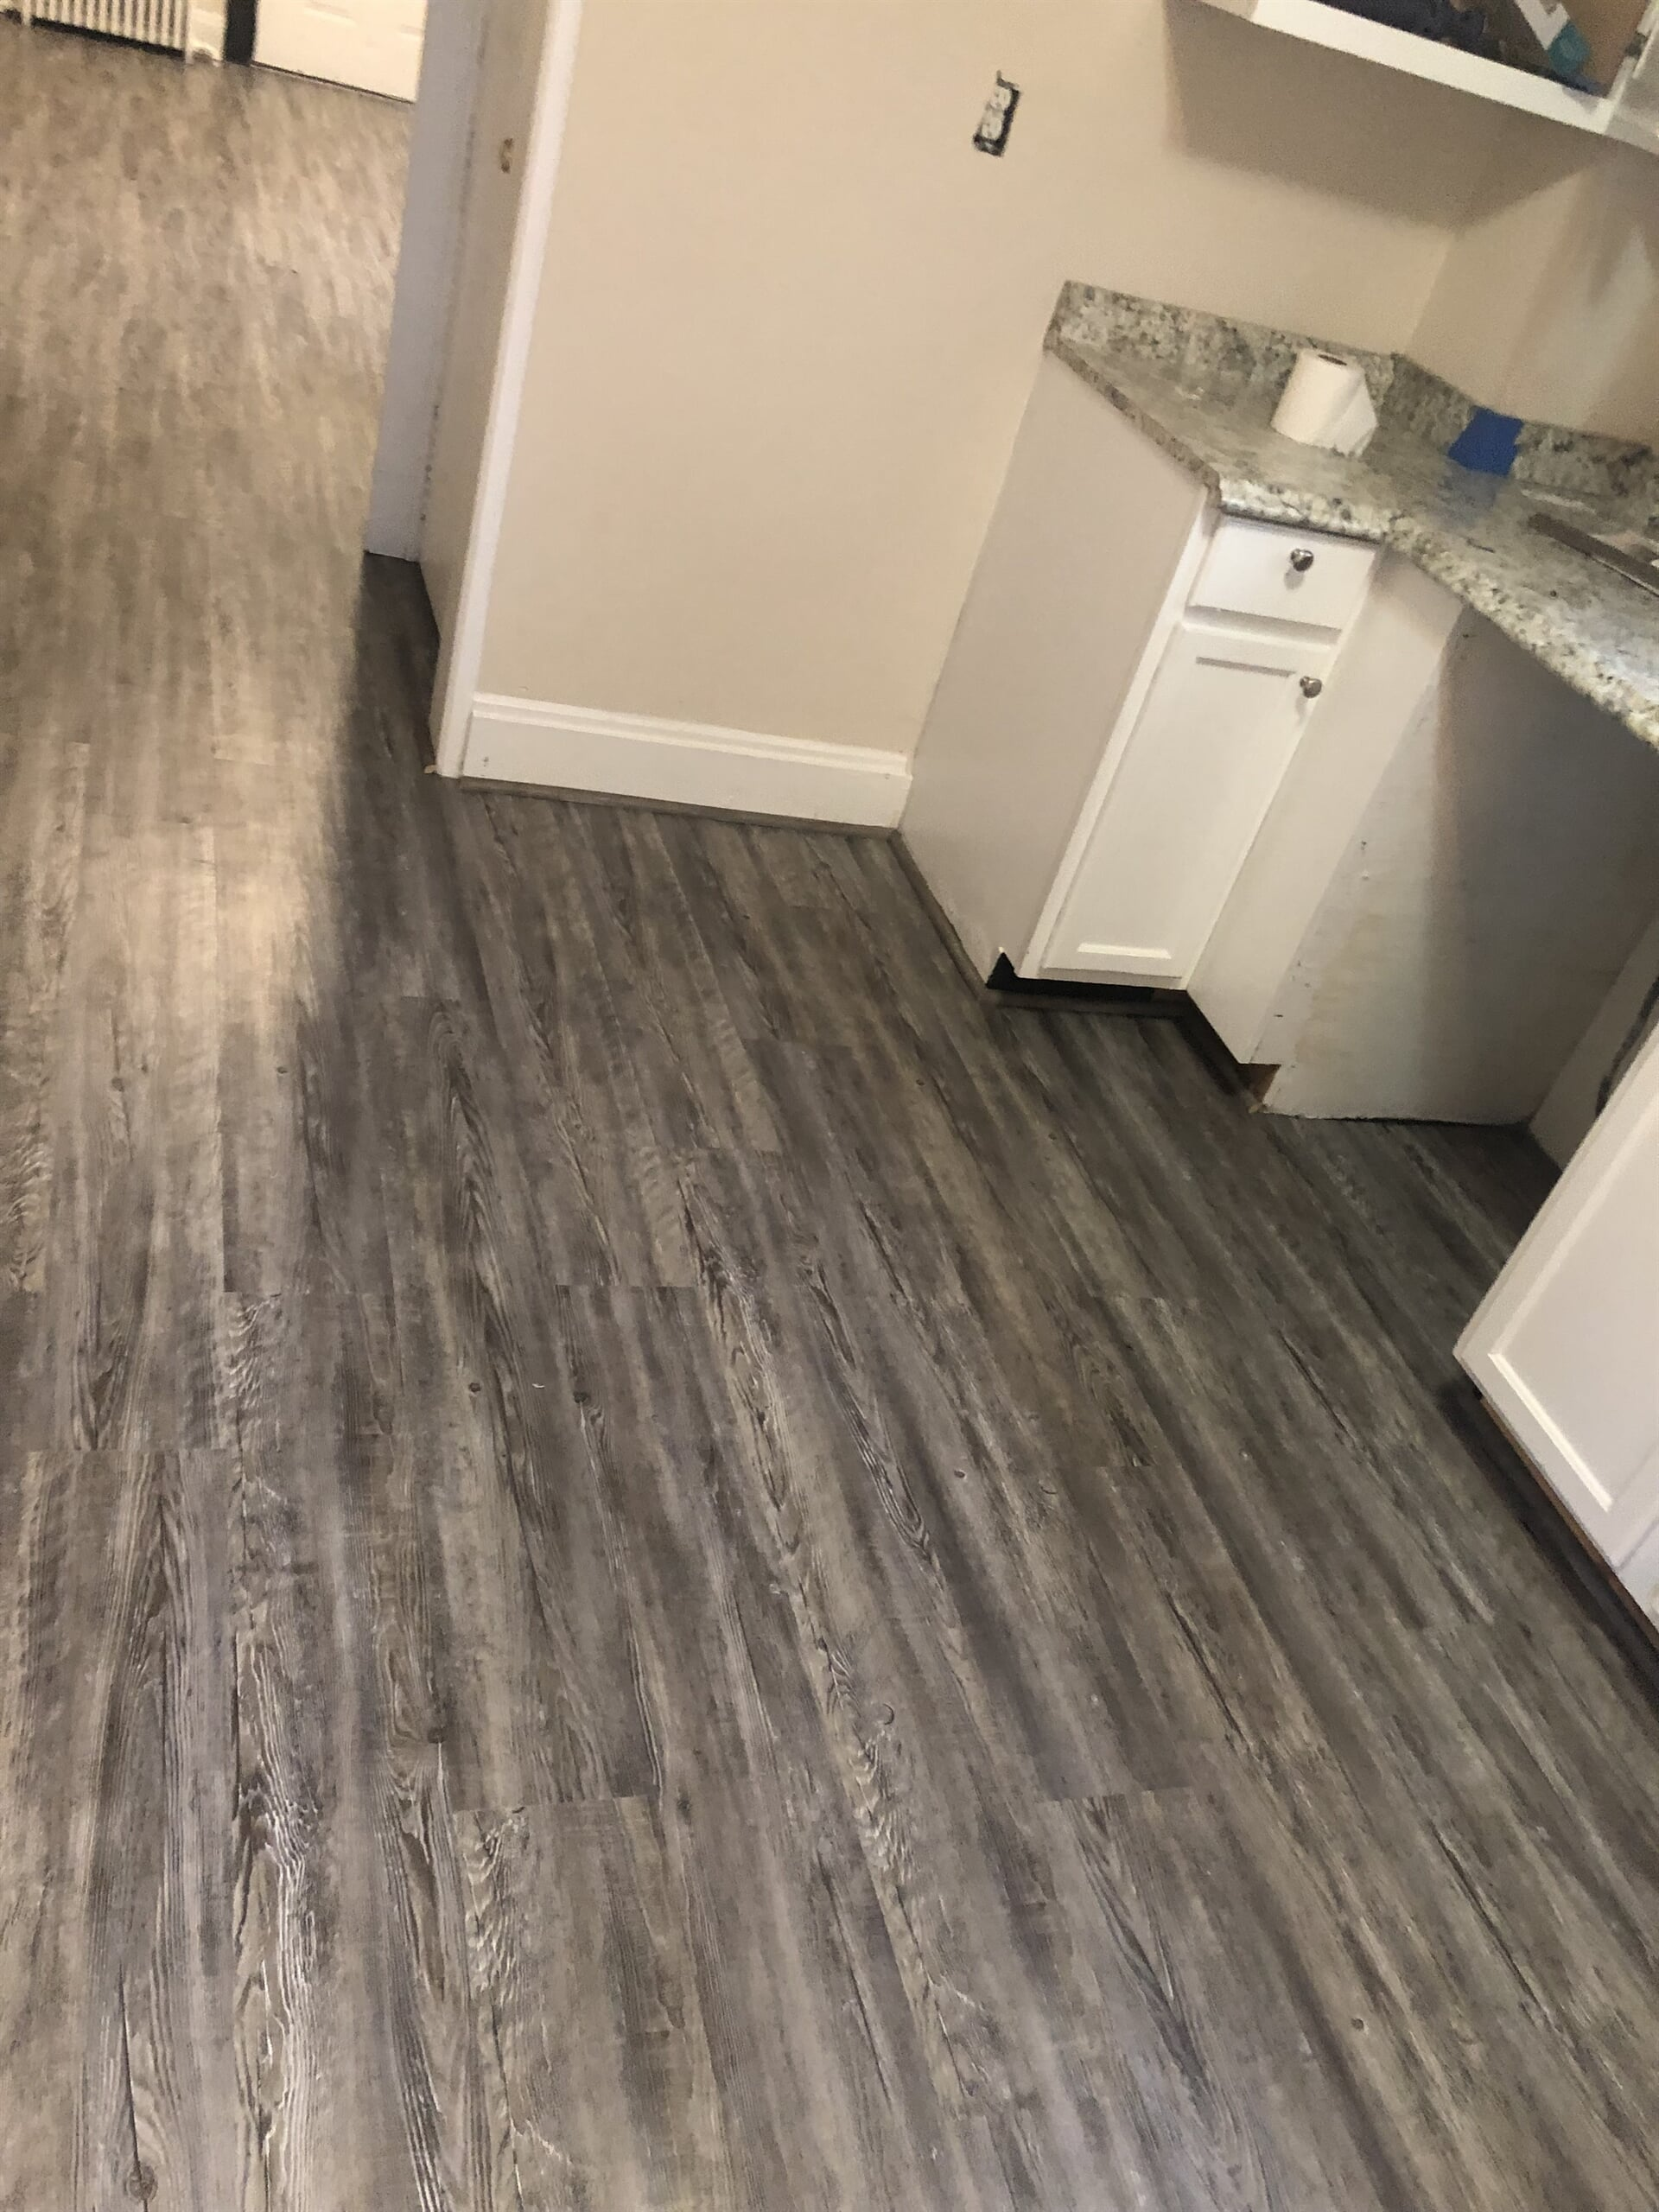 Wood look kitchen flooring in Howard County, MD from Andonian's Carpet Warehouse